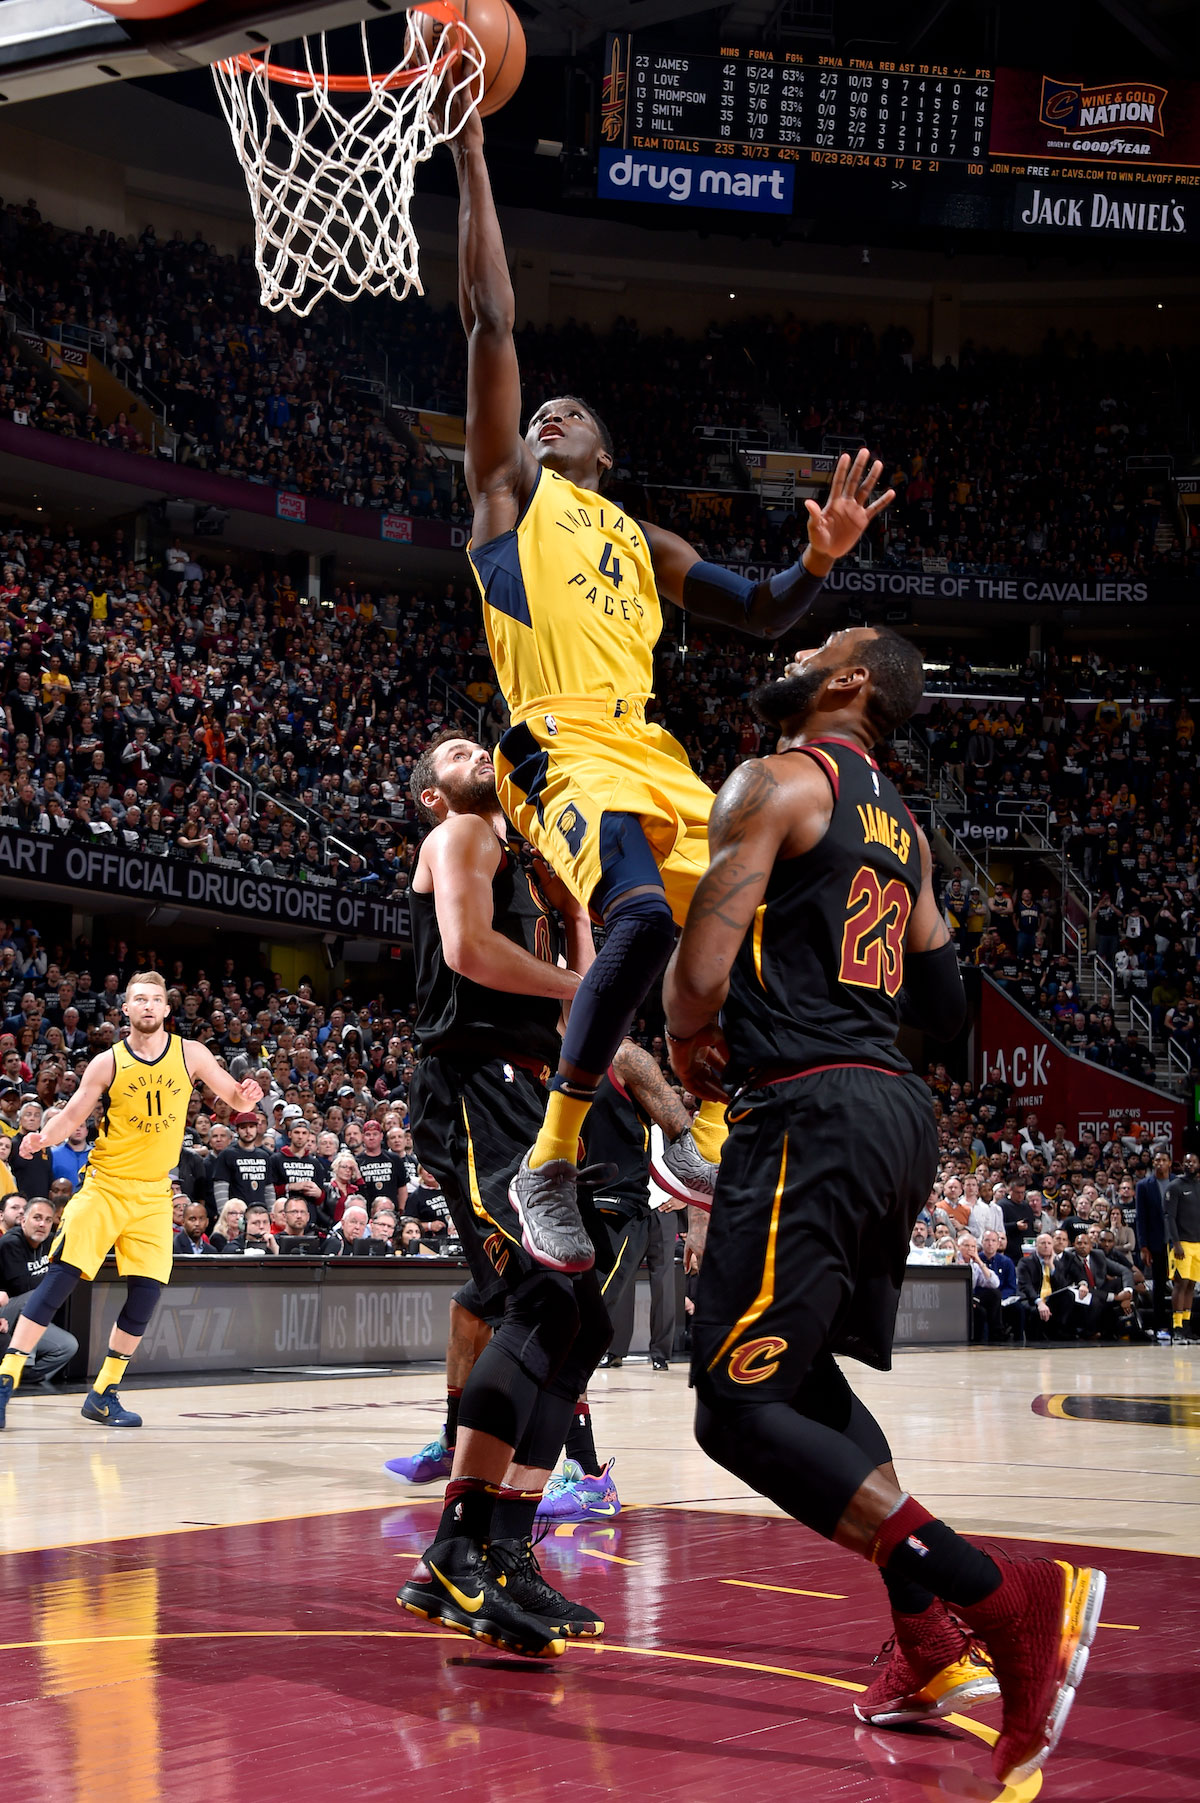 Victor Oladipo #4 of the Indiana Pacers goes to the basket against the Cleveland Cavaliers in Game Seven of Round One of the 2018 NBA Playoffs on April 29, 2018 at Quicken Loans Arena in Cleveland, Ohio